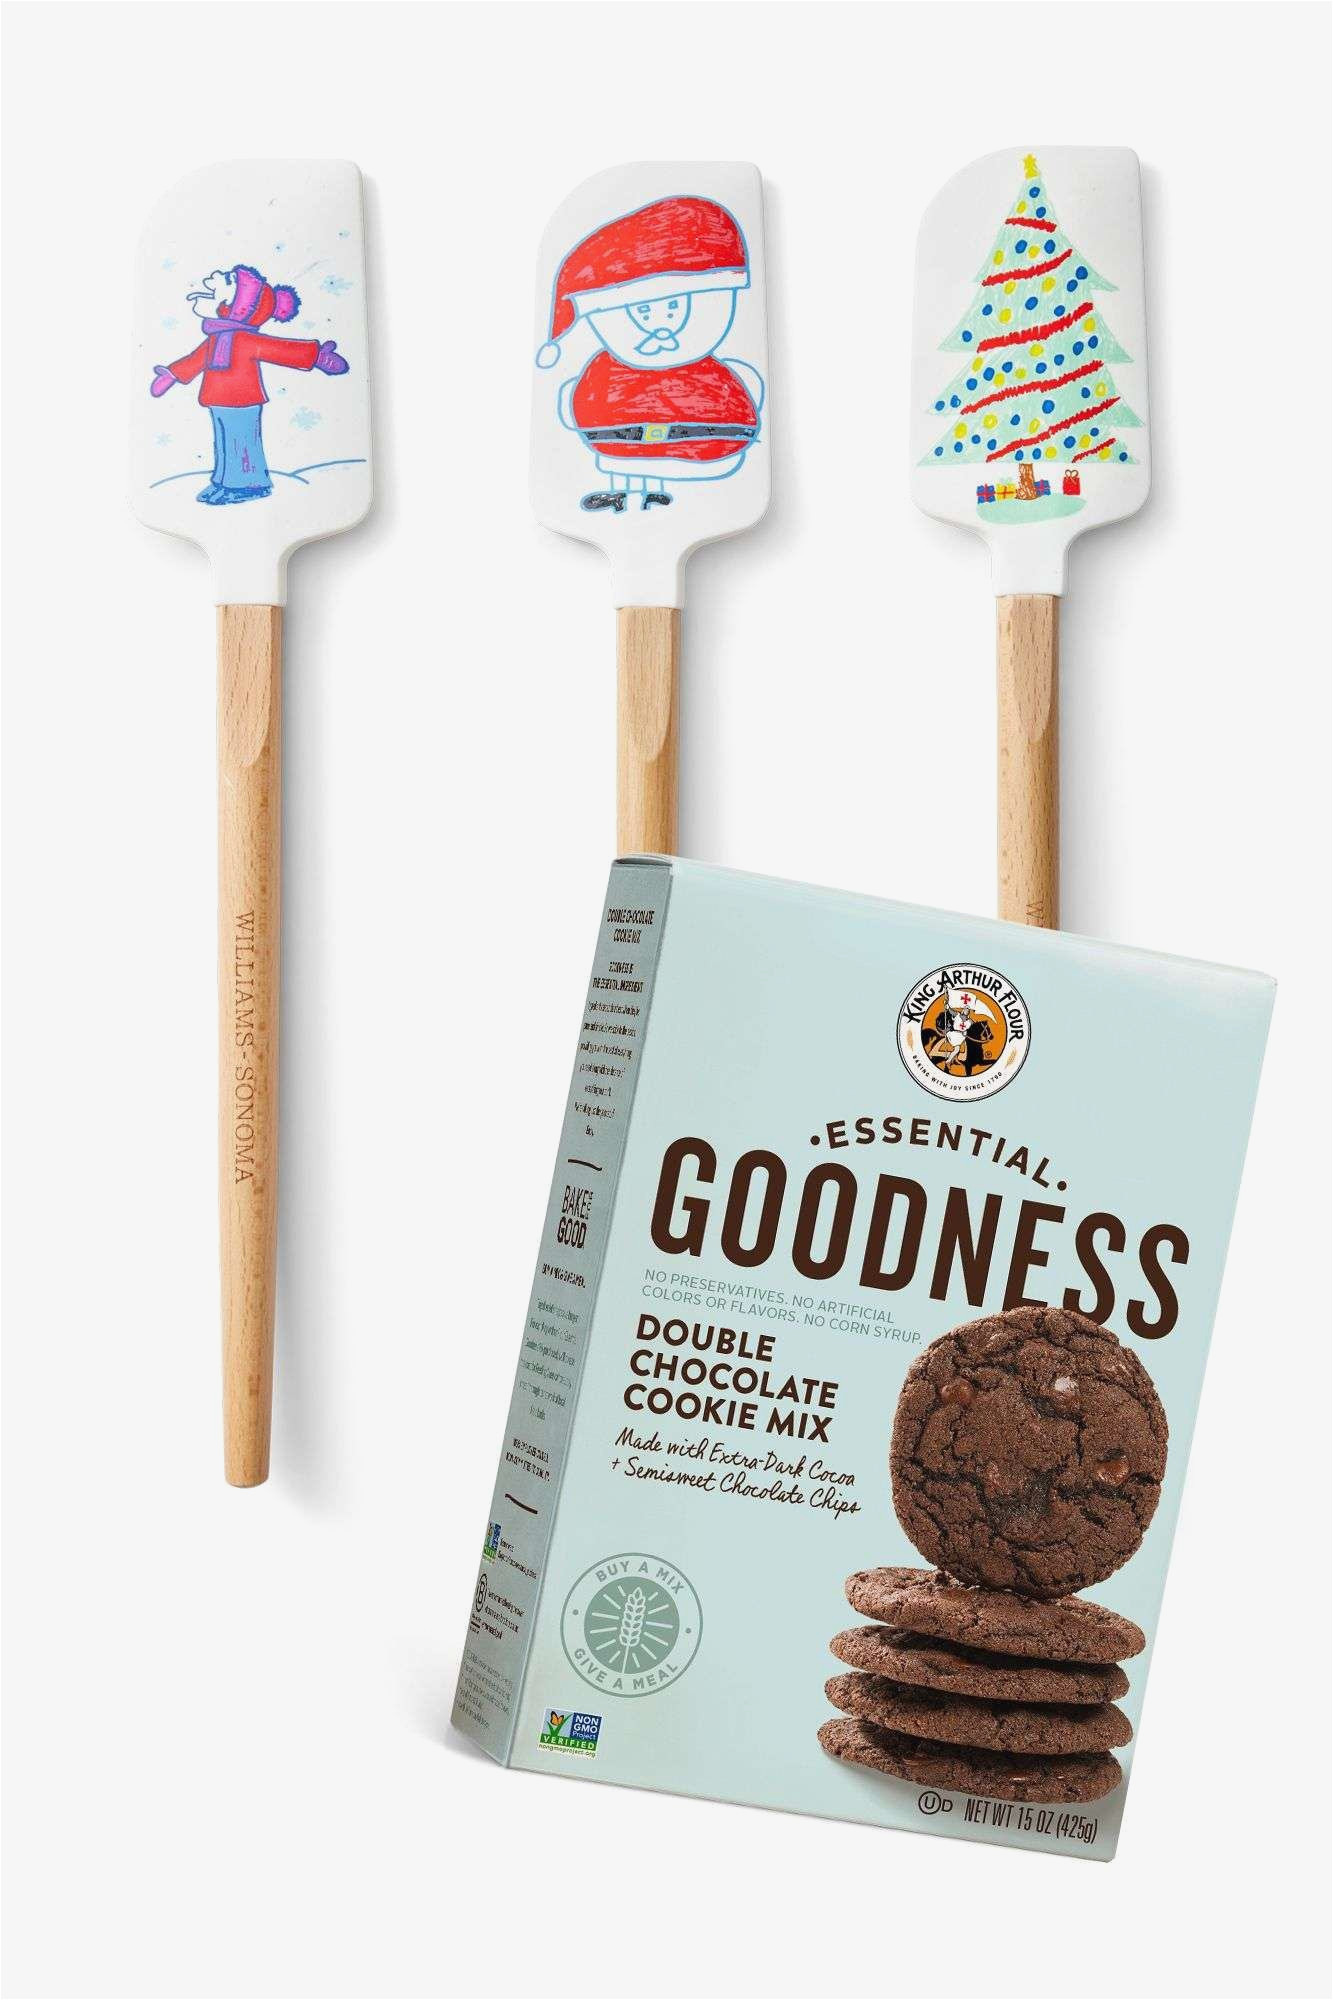 Cookies by Design Melbourne Decor New Cookie Decorating Ideas Design Ideas Contemporary In